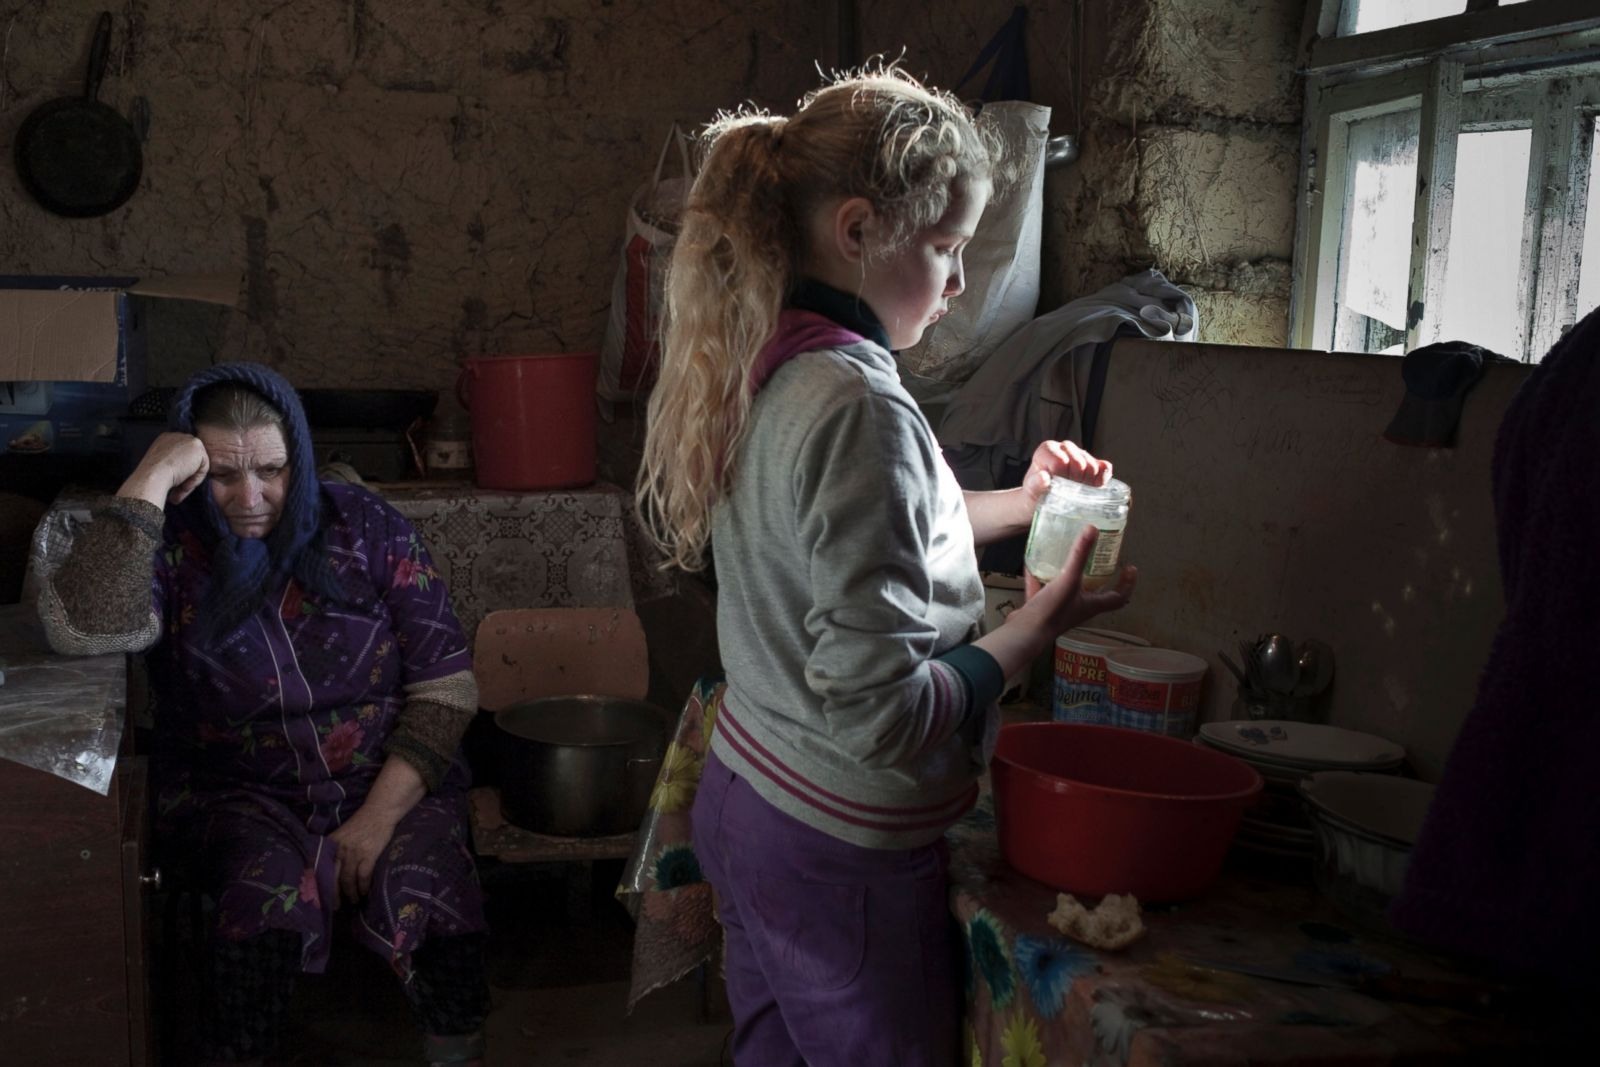 Behind the Absence: The Children of Moldova